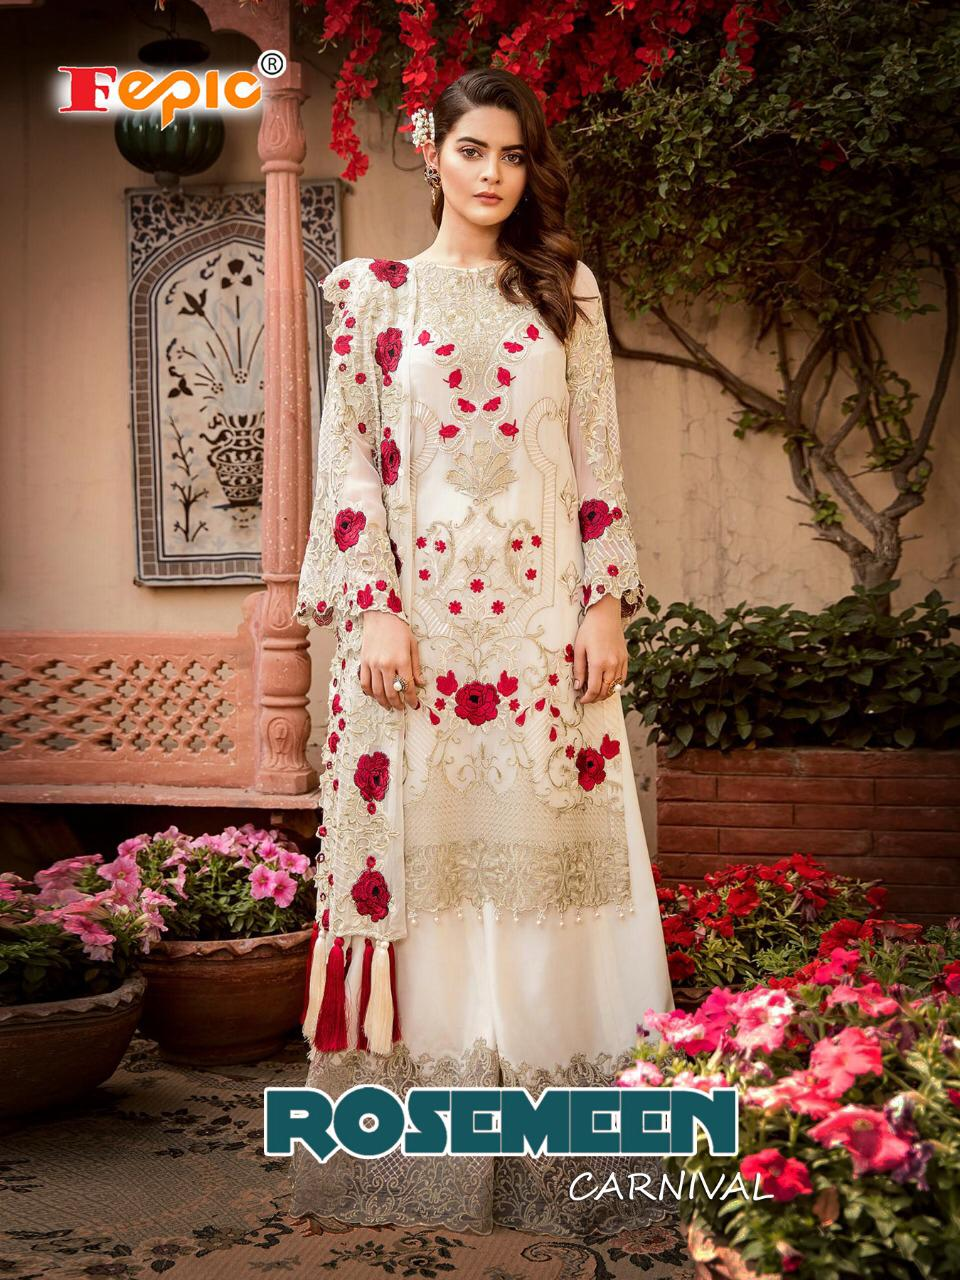 fepic rosemeen carnival colorful fancy collection of salwaar suits